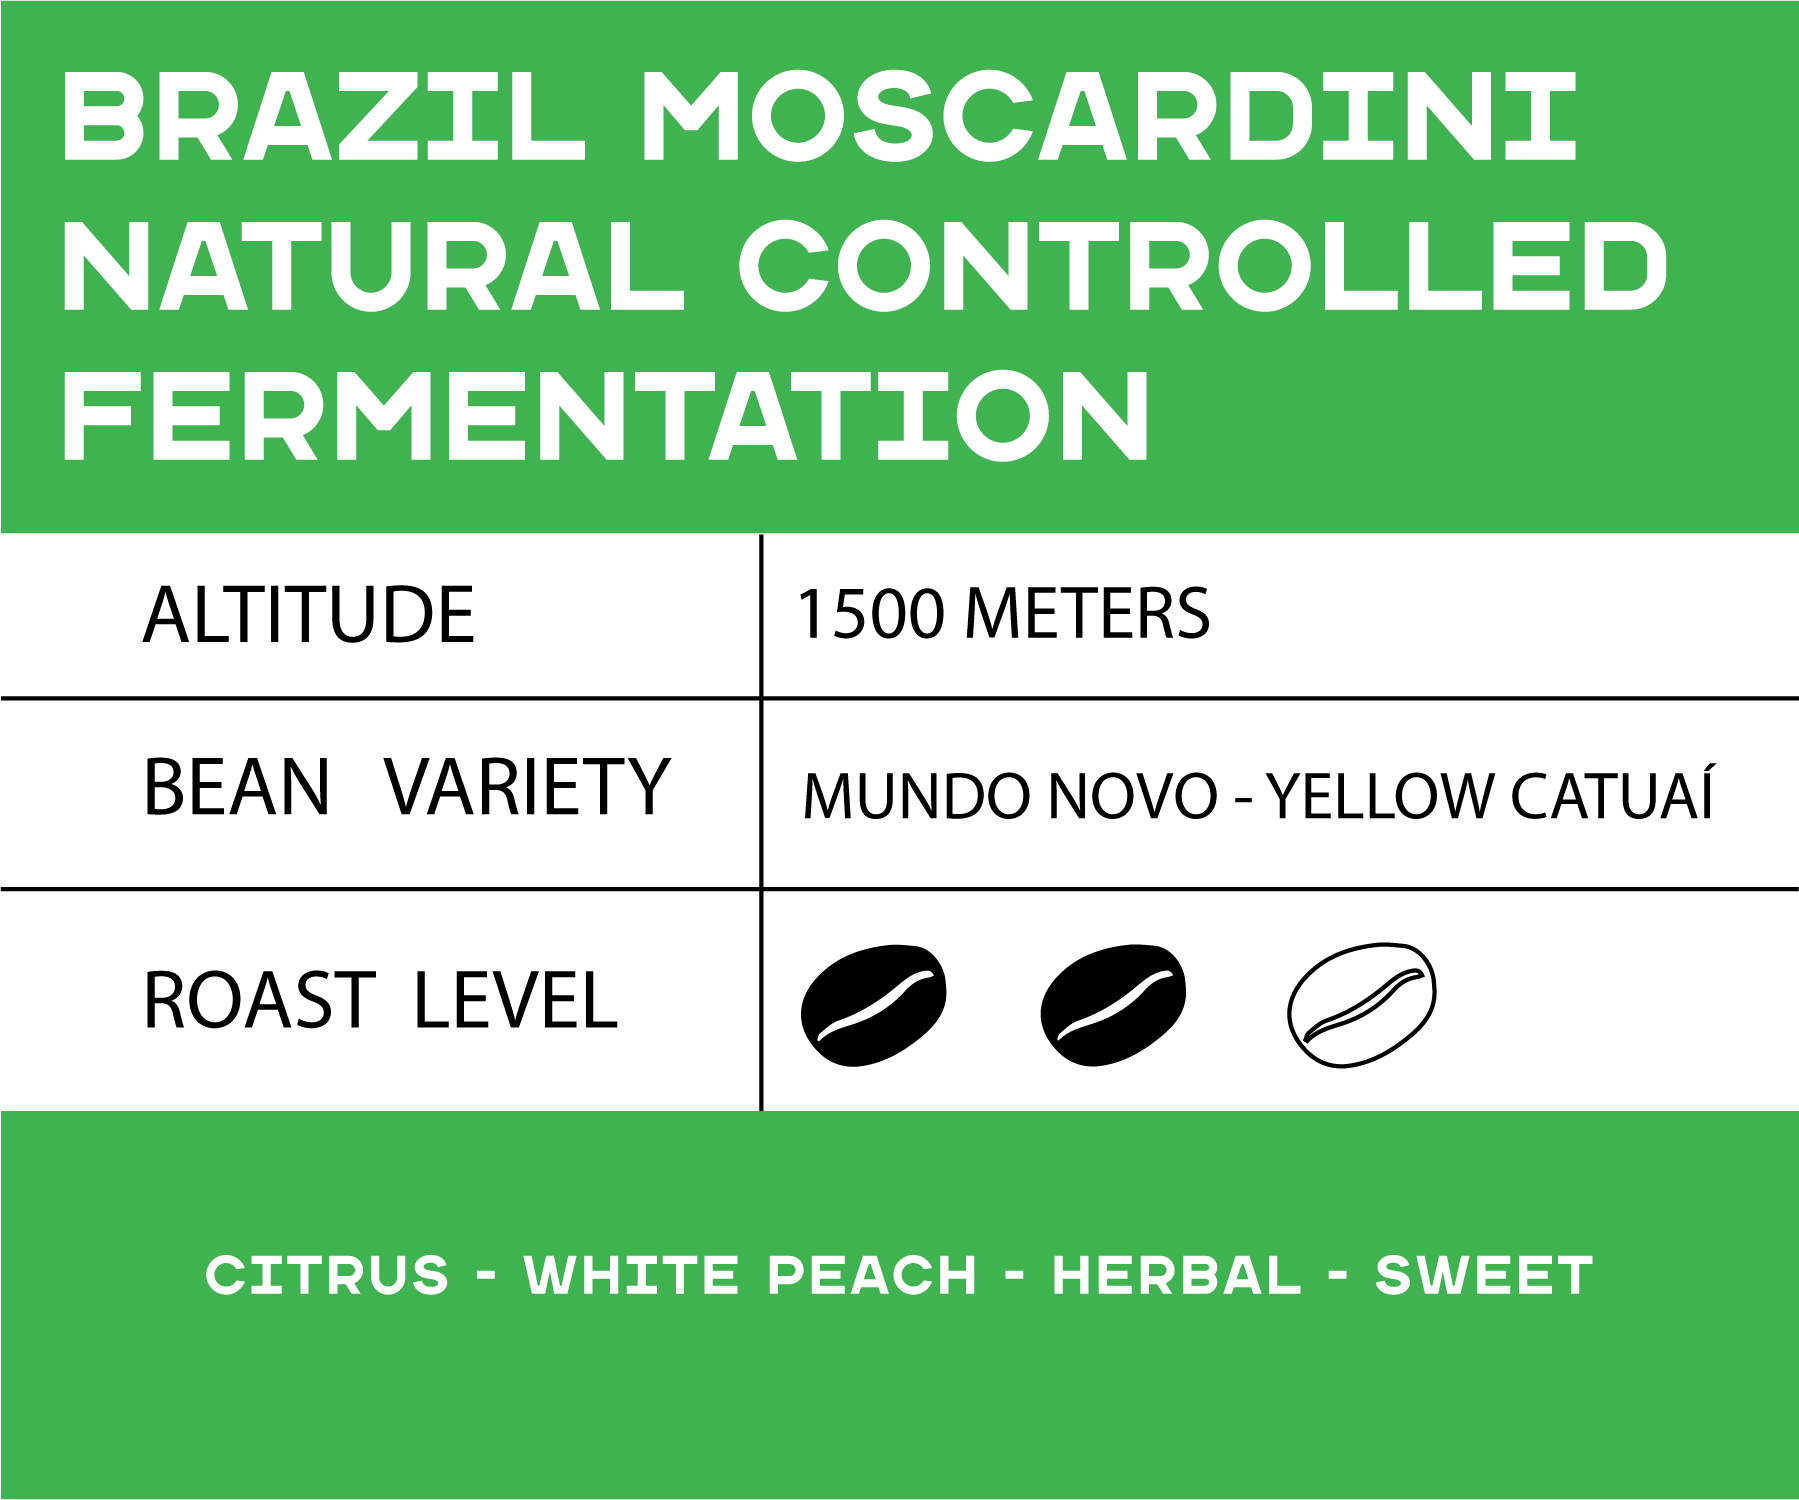 Brazil Moscardini Natural Controlled Fermentation